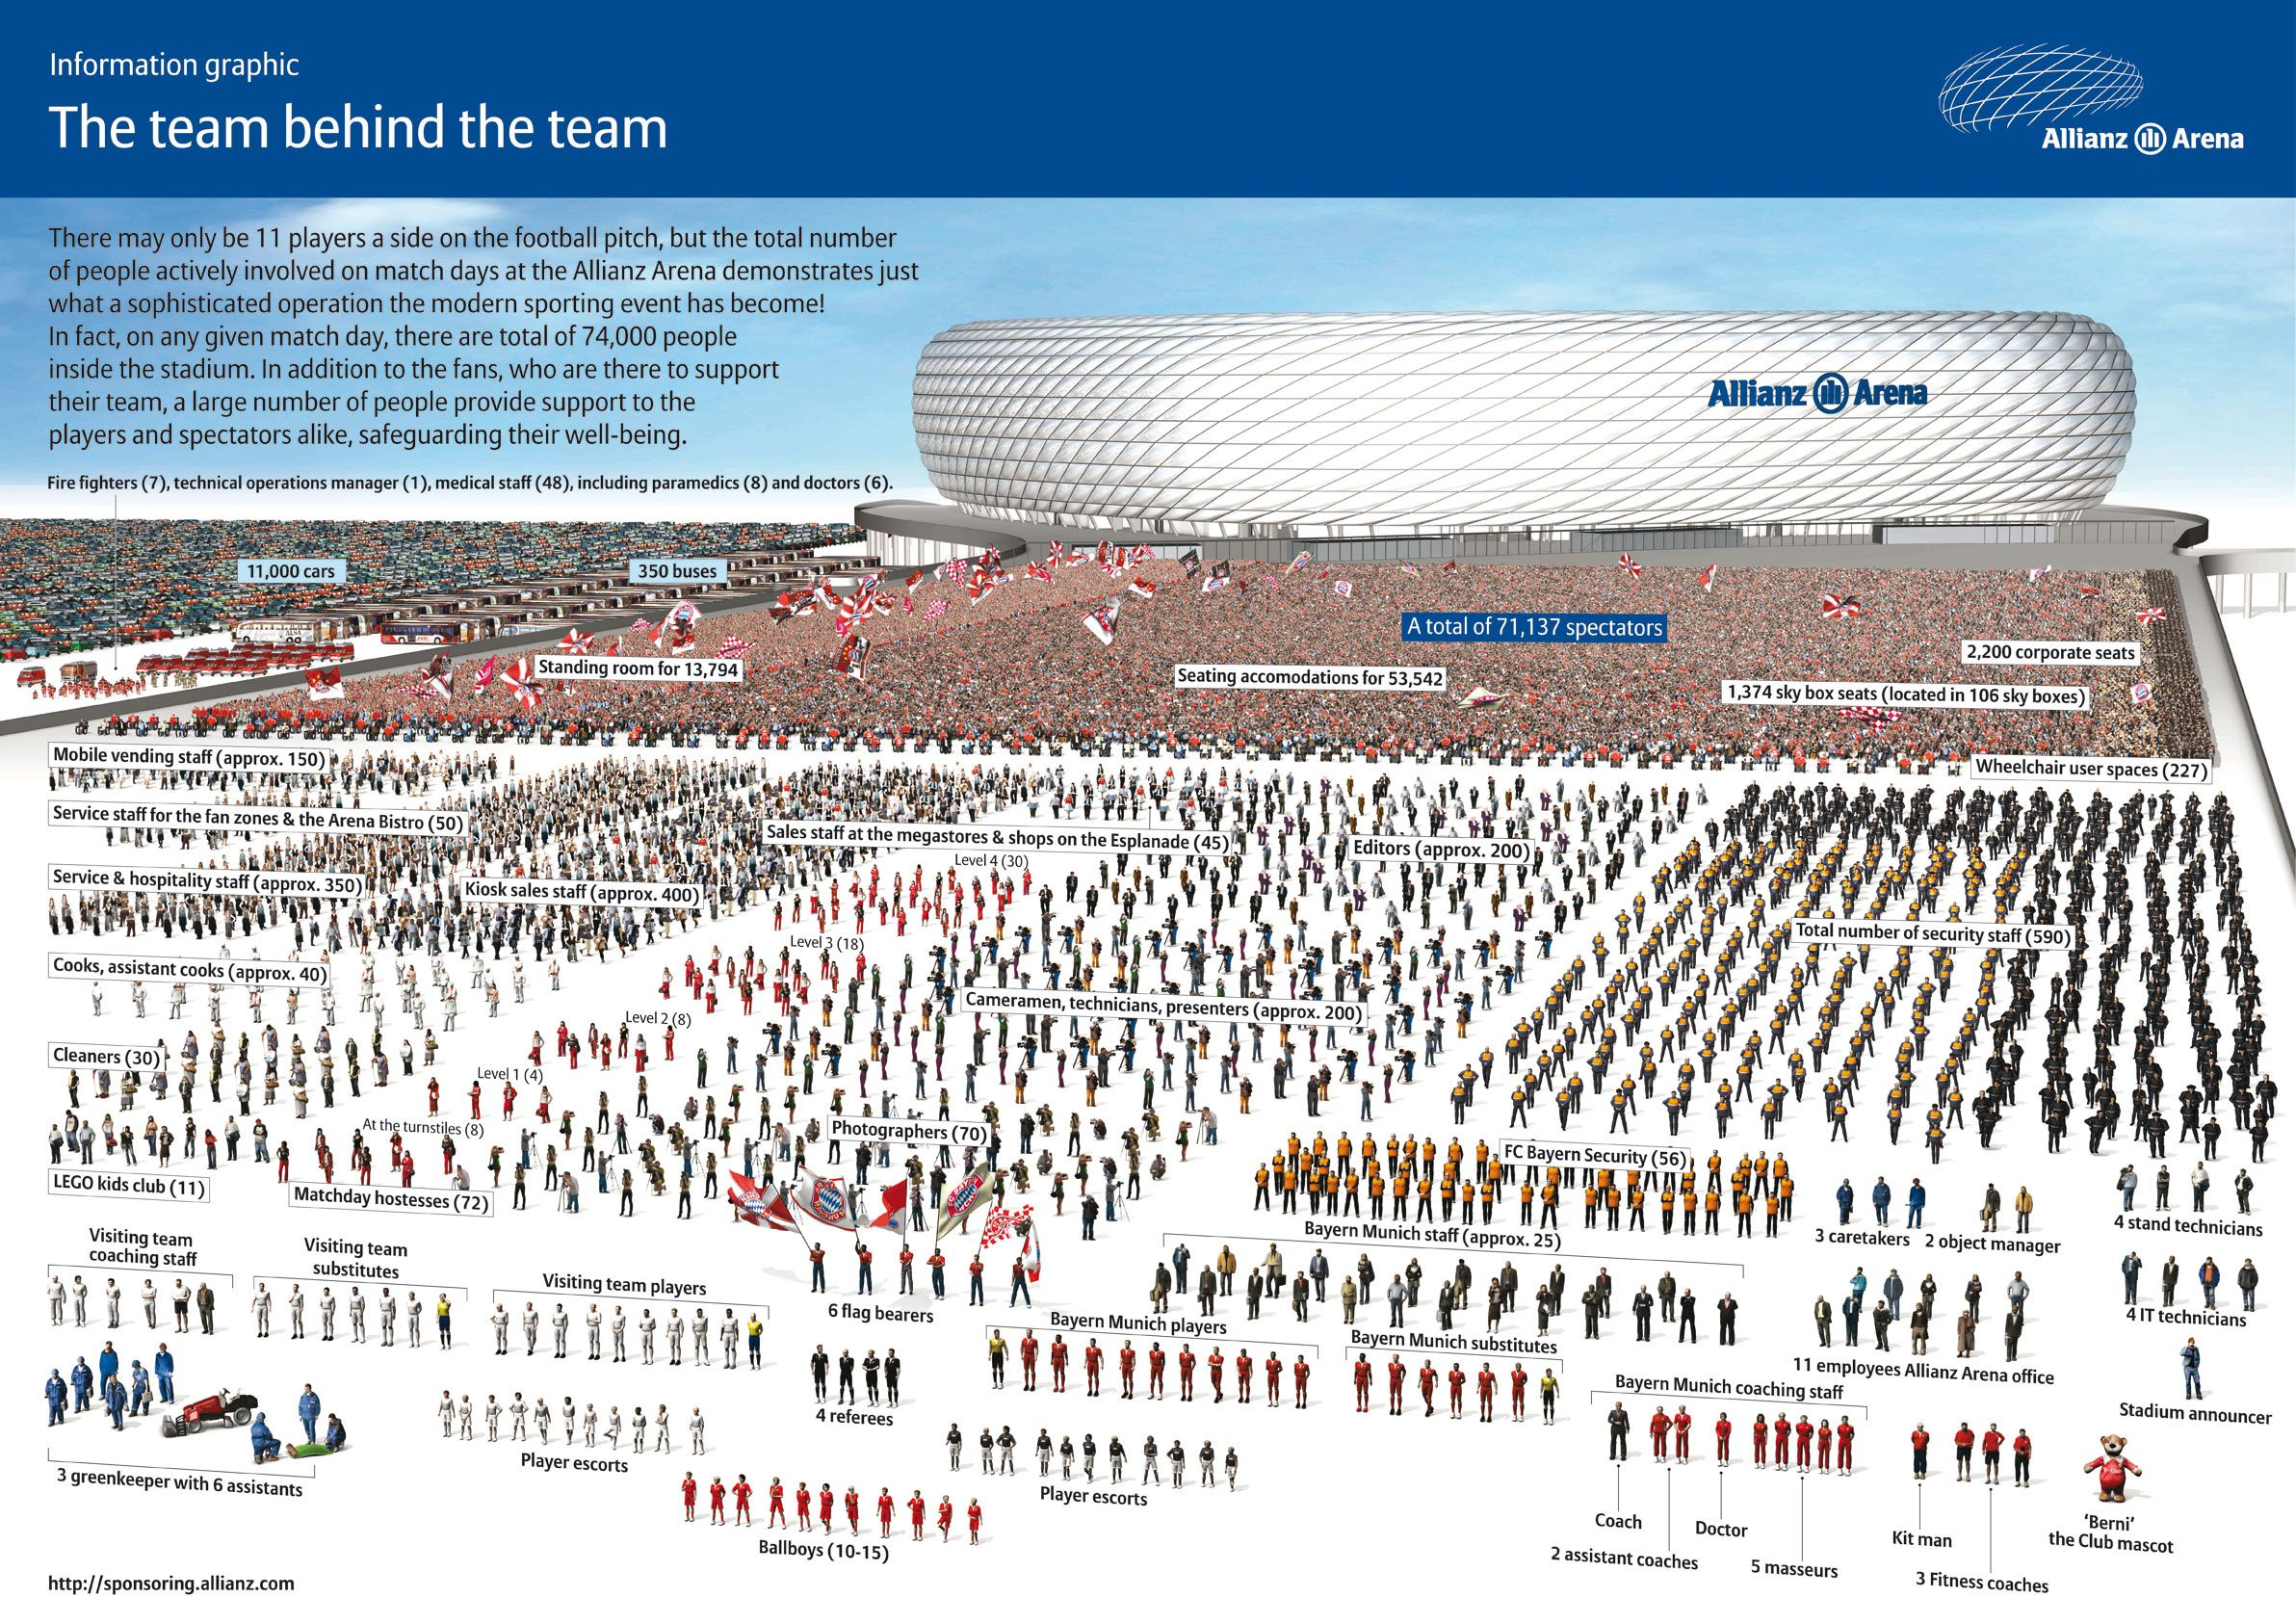 Have you ever wondered how many people fit into the Allianz Arena? Not only football